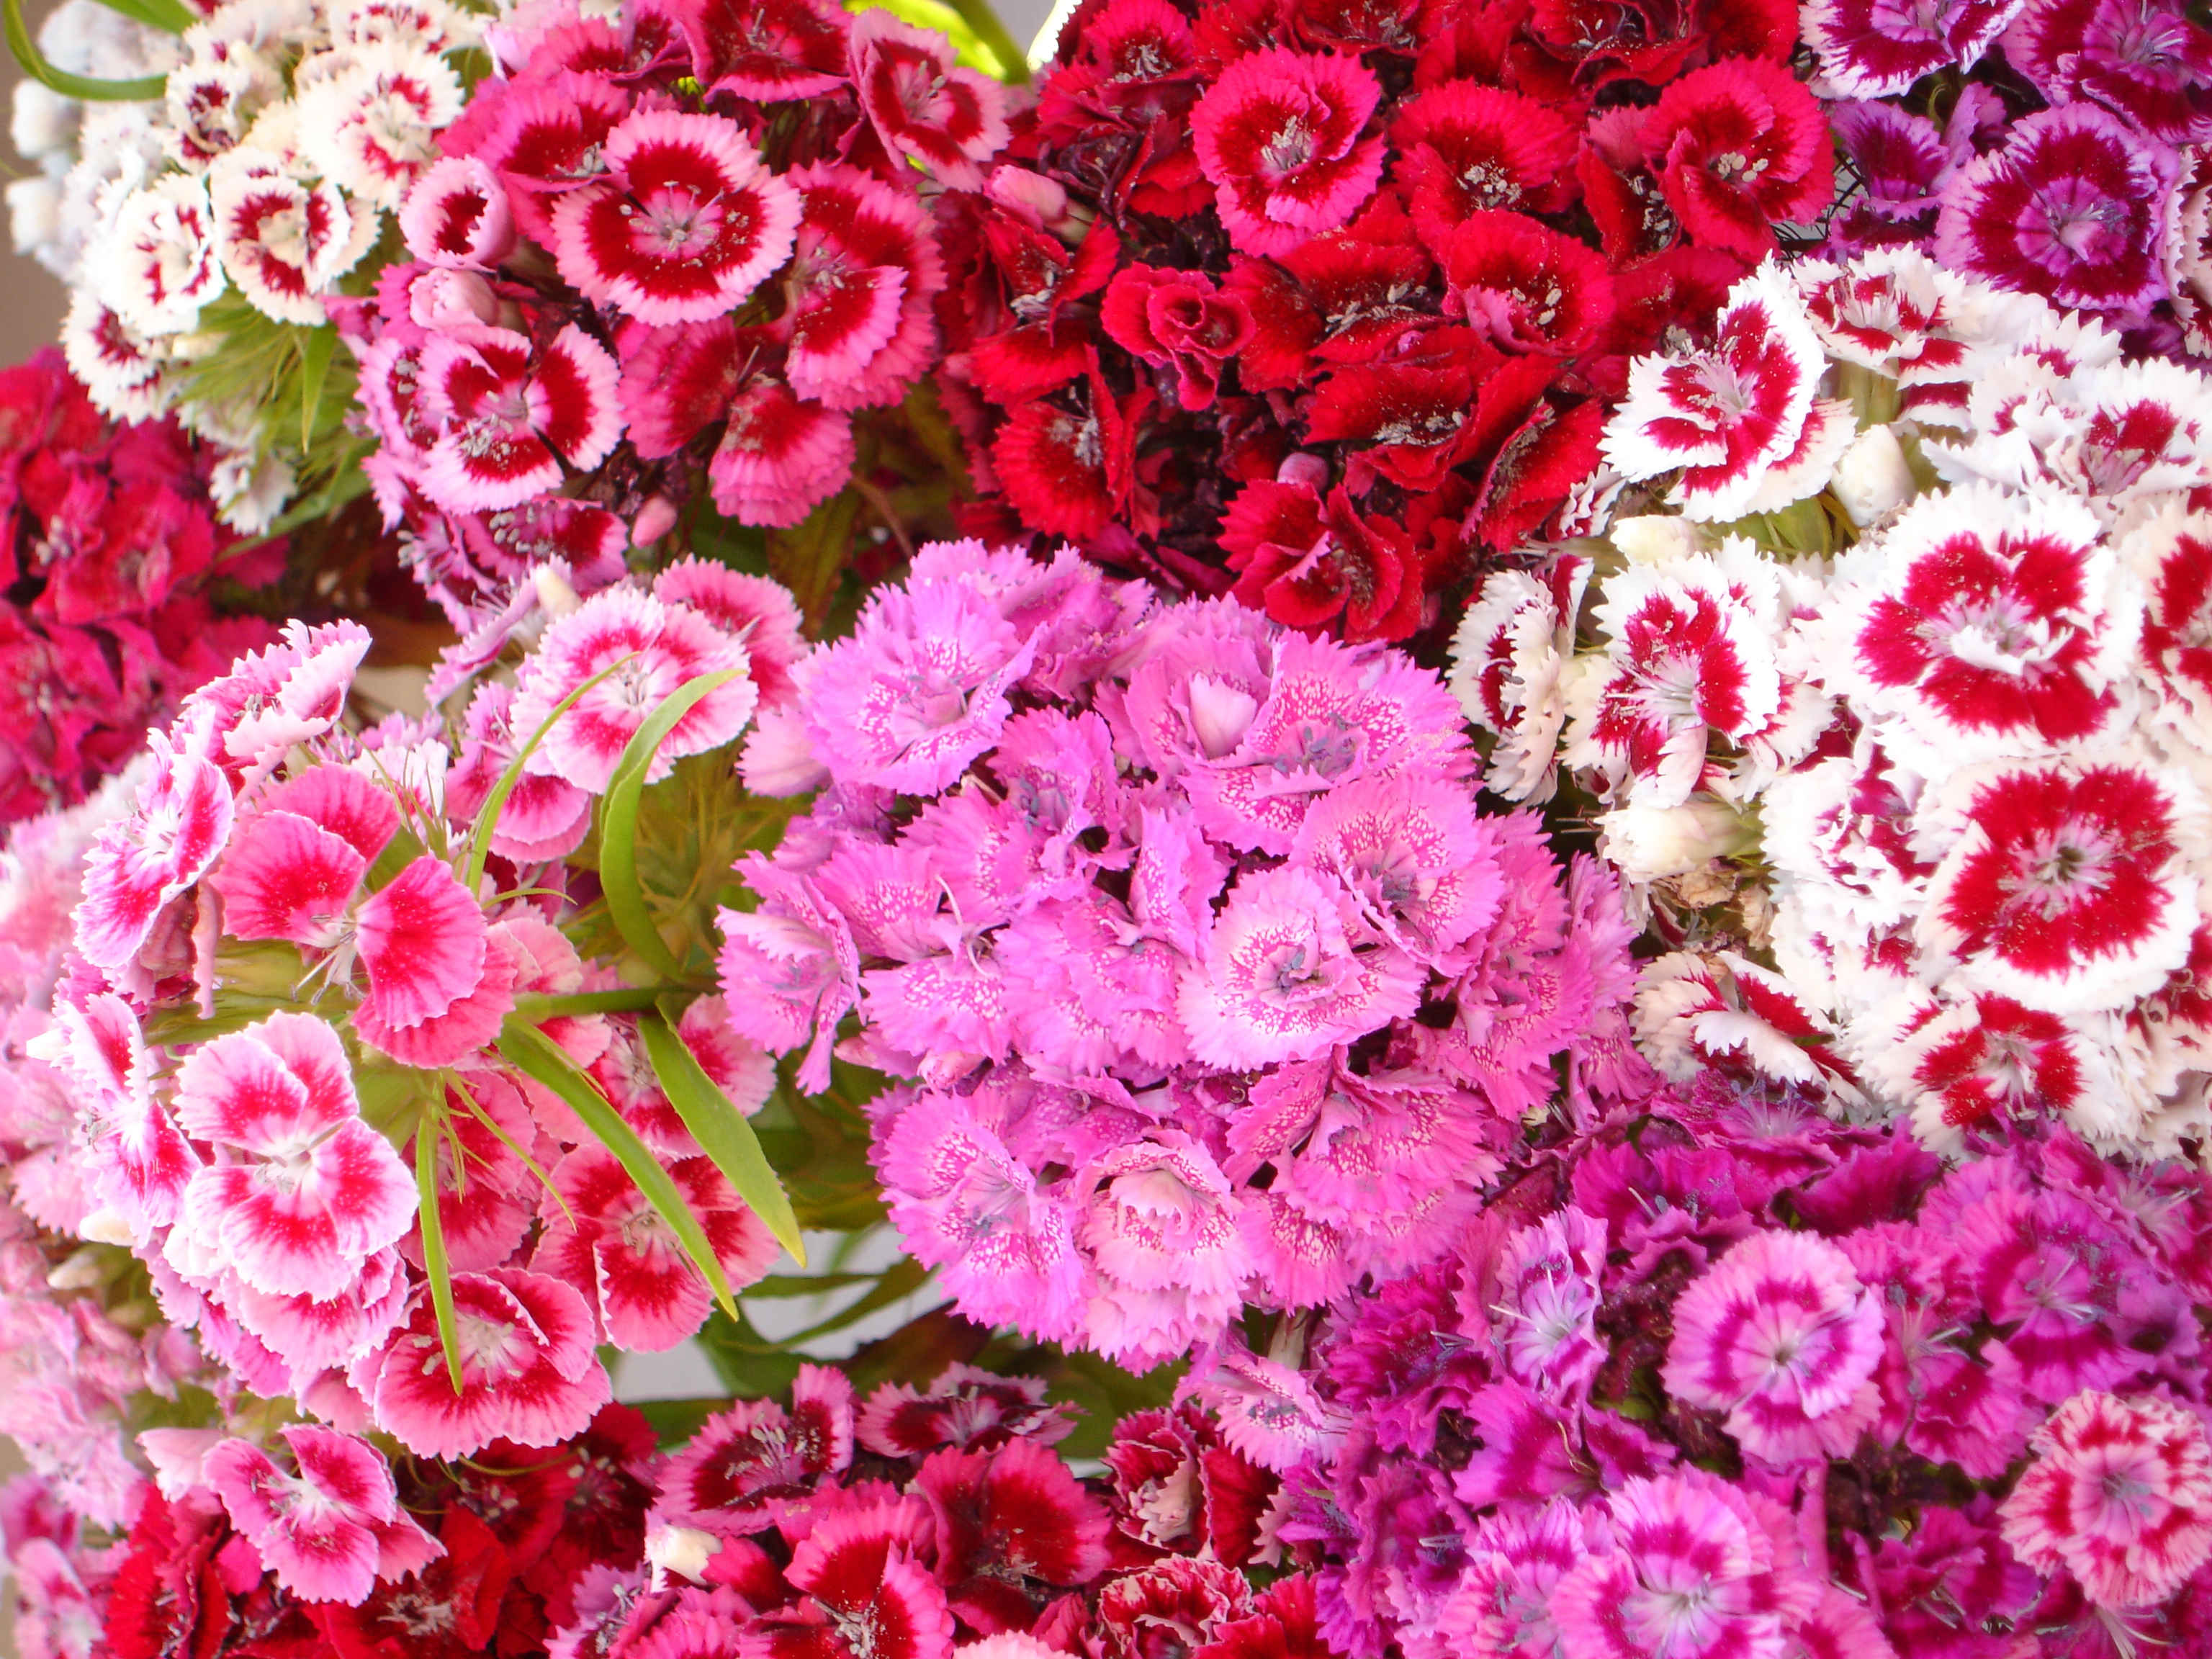 Jpeg flower images graphic royalty free File:June Summer Flowers.jpg - Wikimedia Commons graphic royalty free